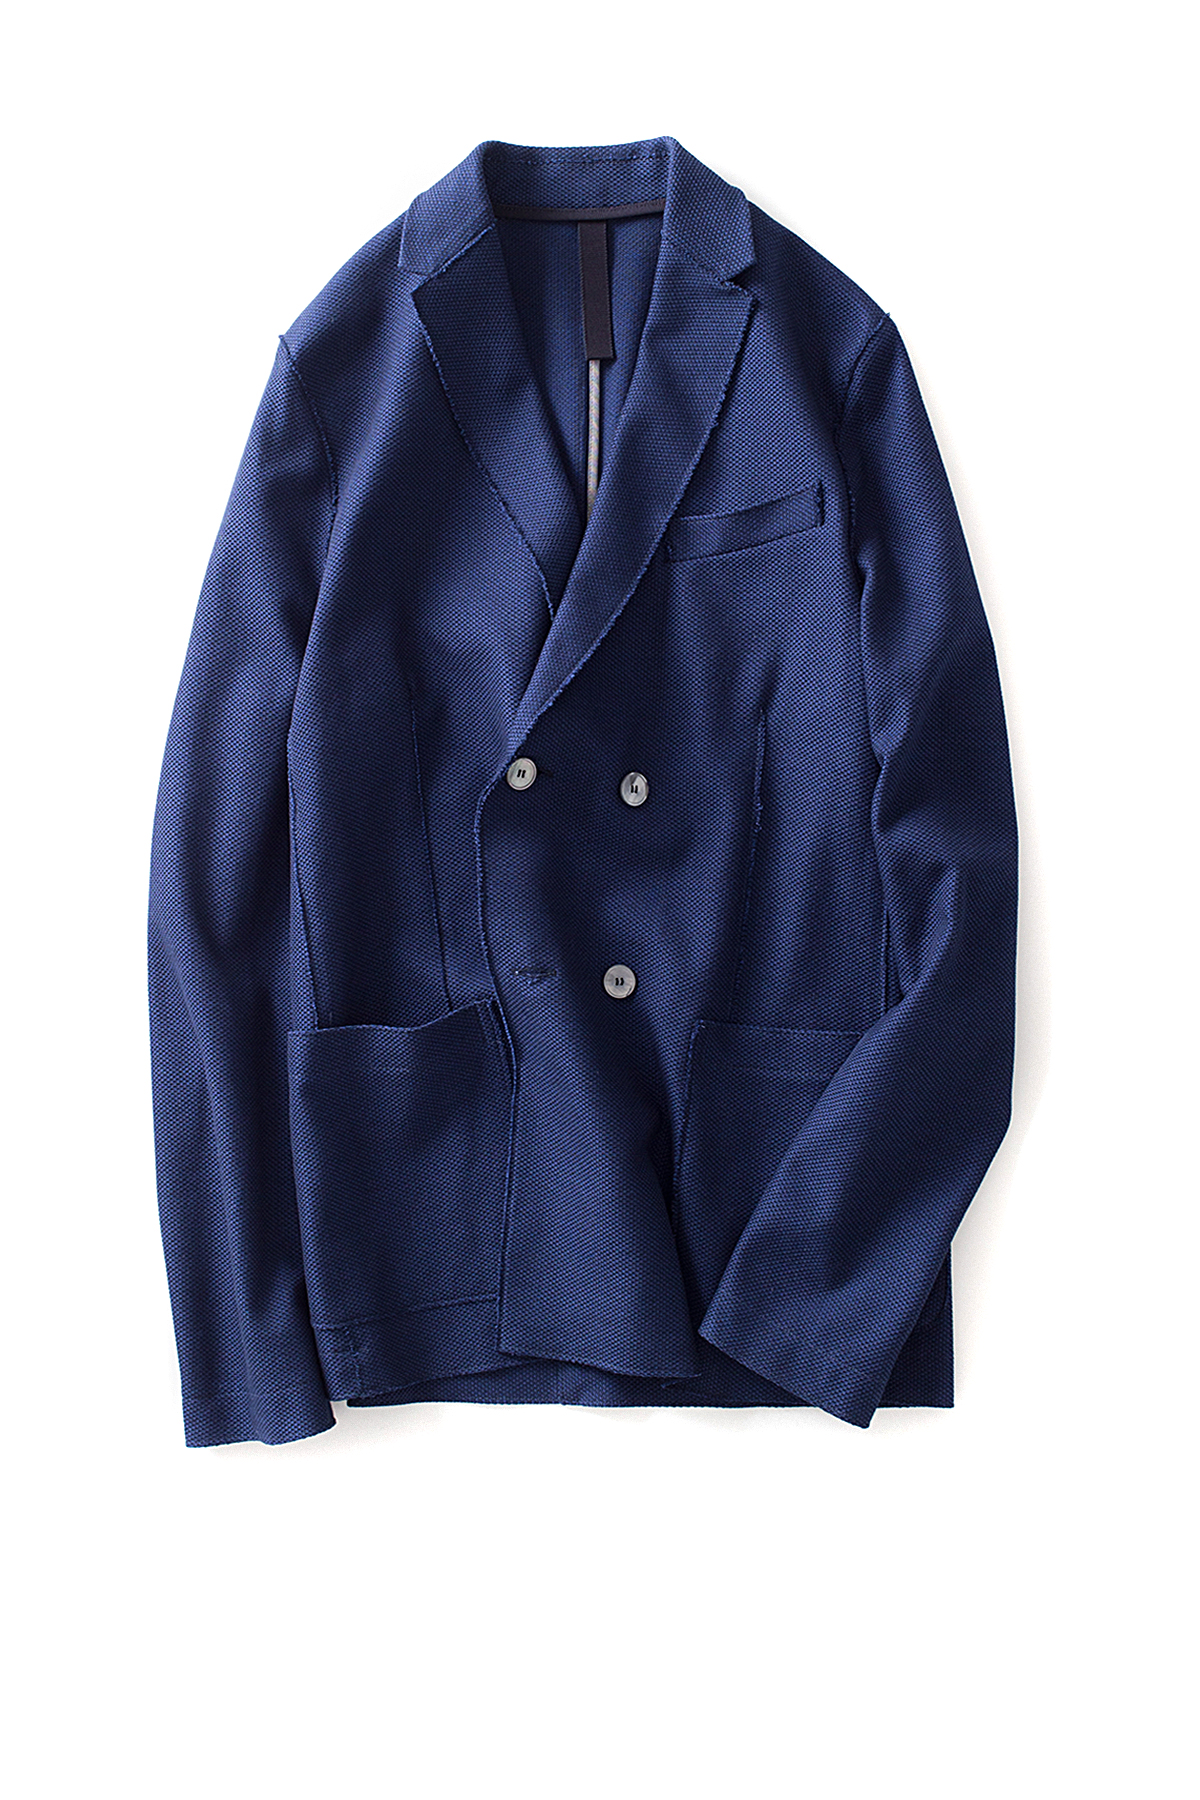 Harris Wharf London : D.breasted Jacket Nailhead (Dark Blue)